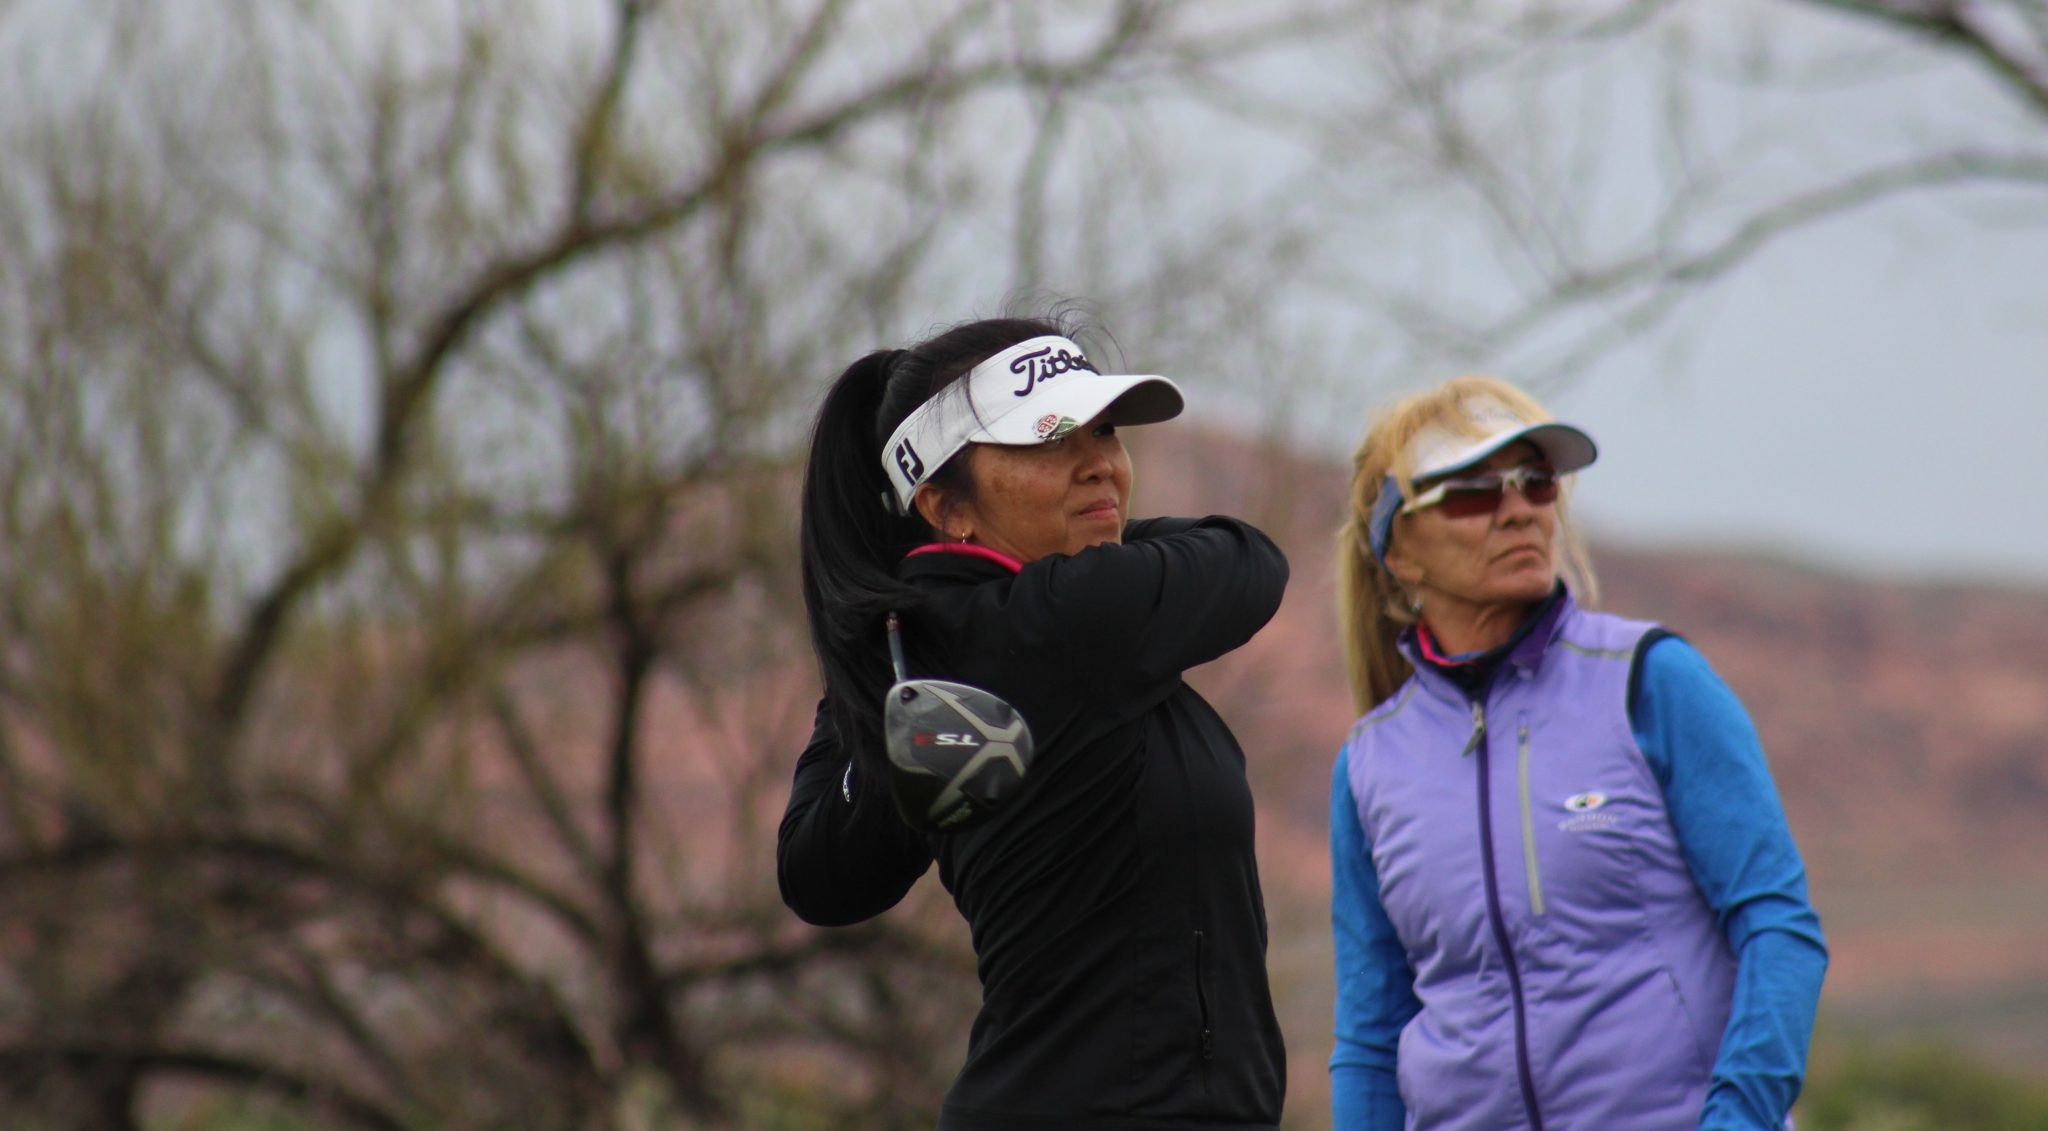 Nuny and Annette tee shot